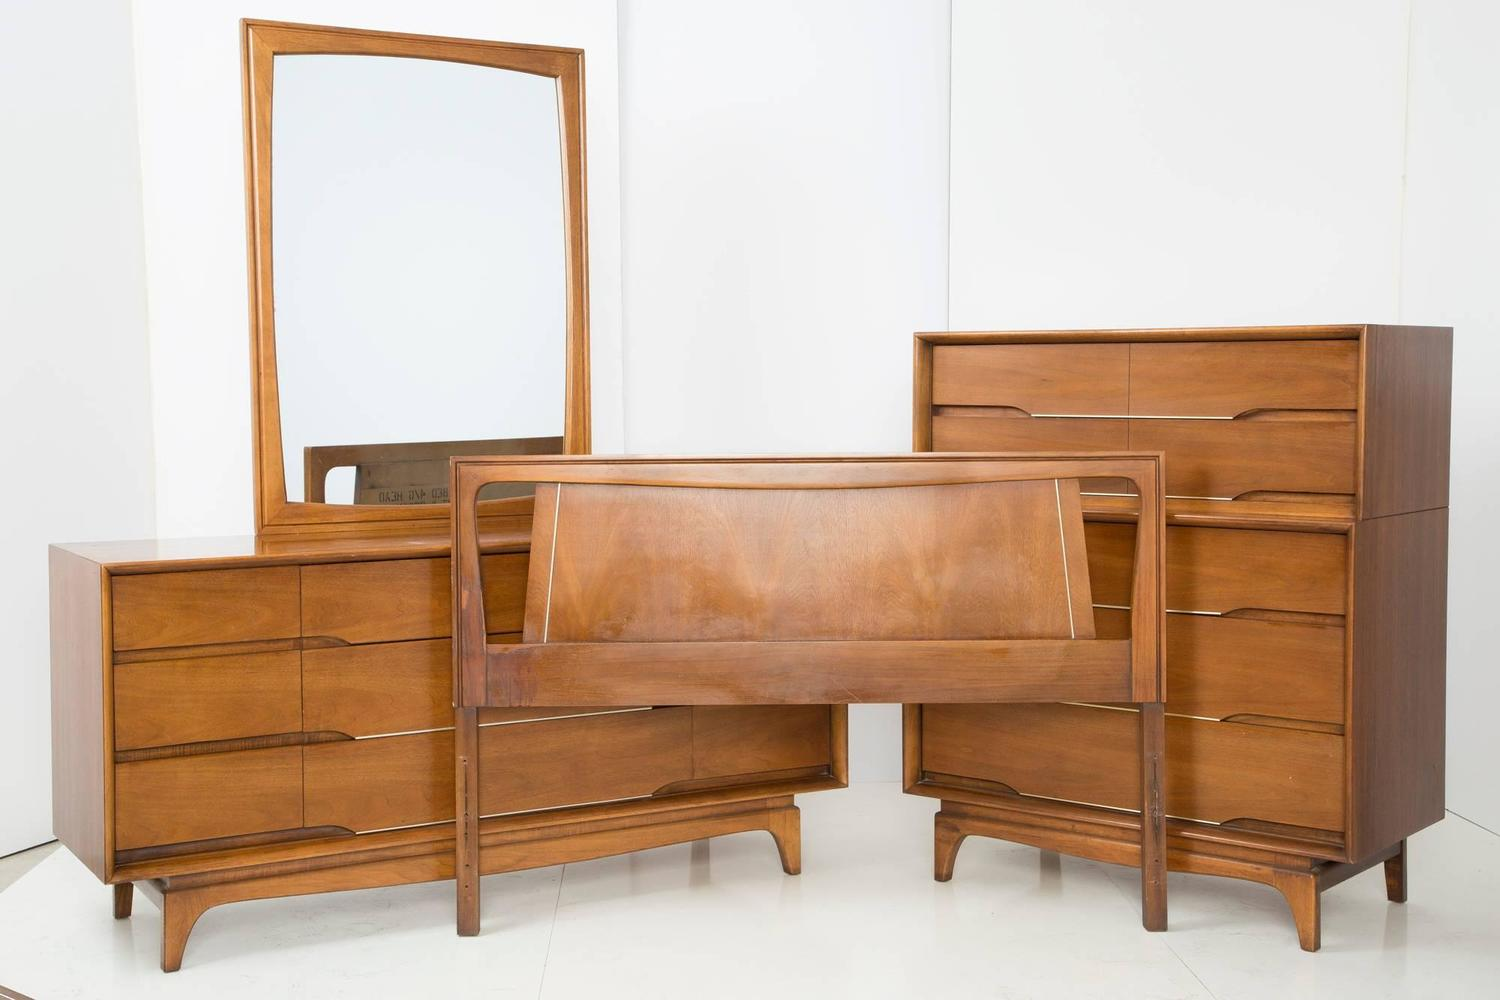 Seasonal Deal Danish Modern Mid Century Headboard Kent Coffey At 1stdibs